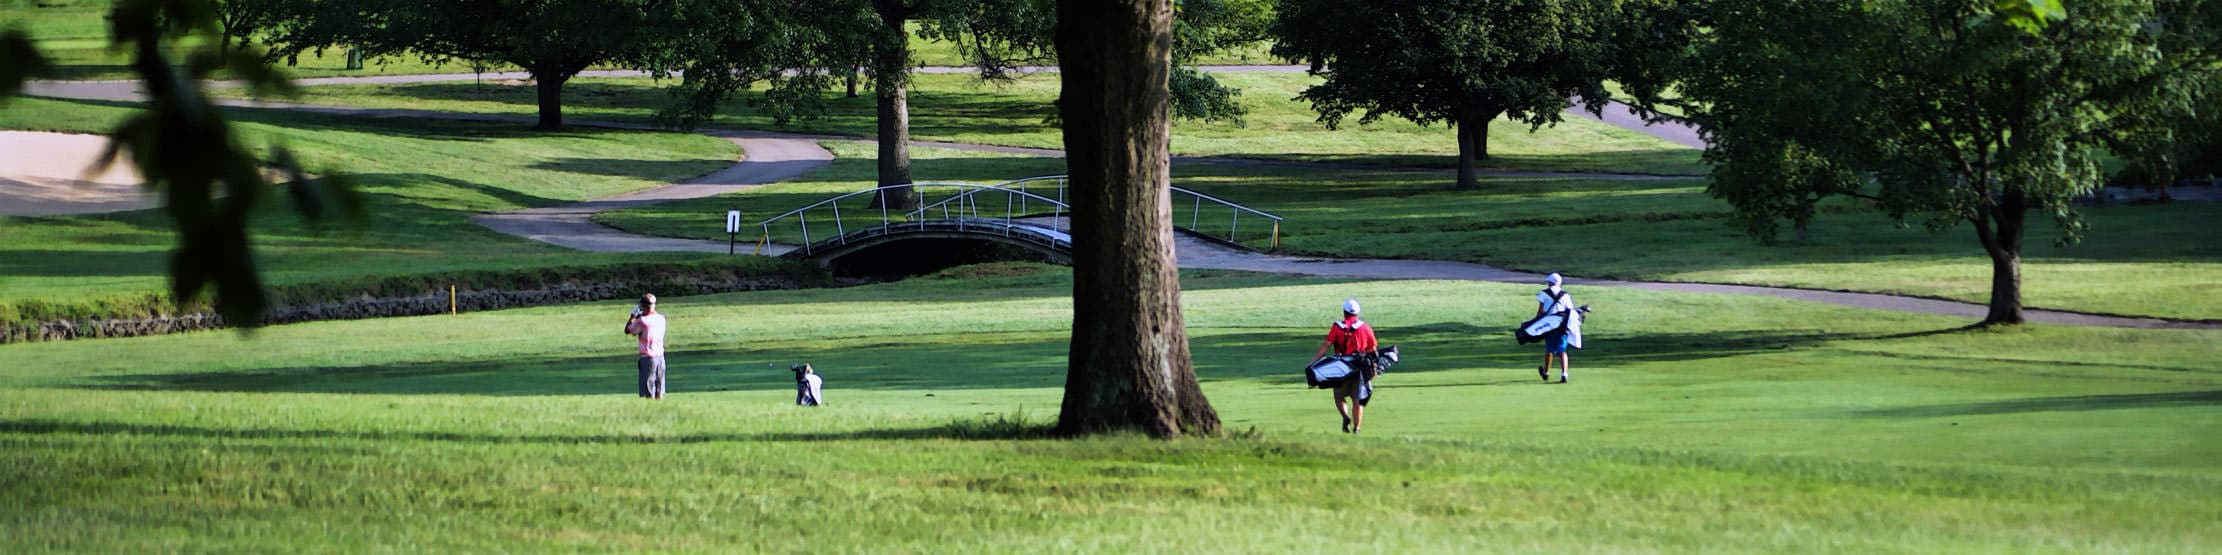 Otter Creek Golf Course - Columbus, Indiana